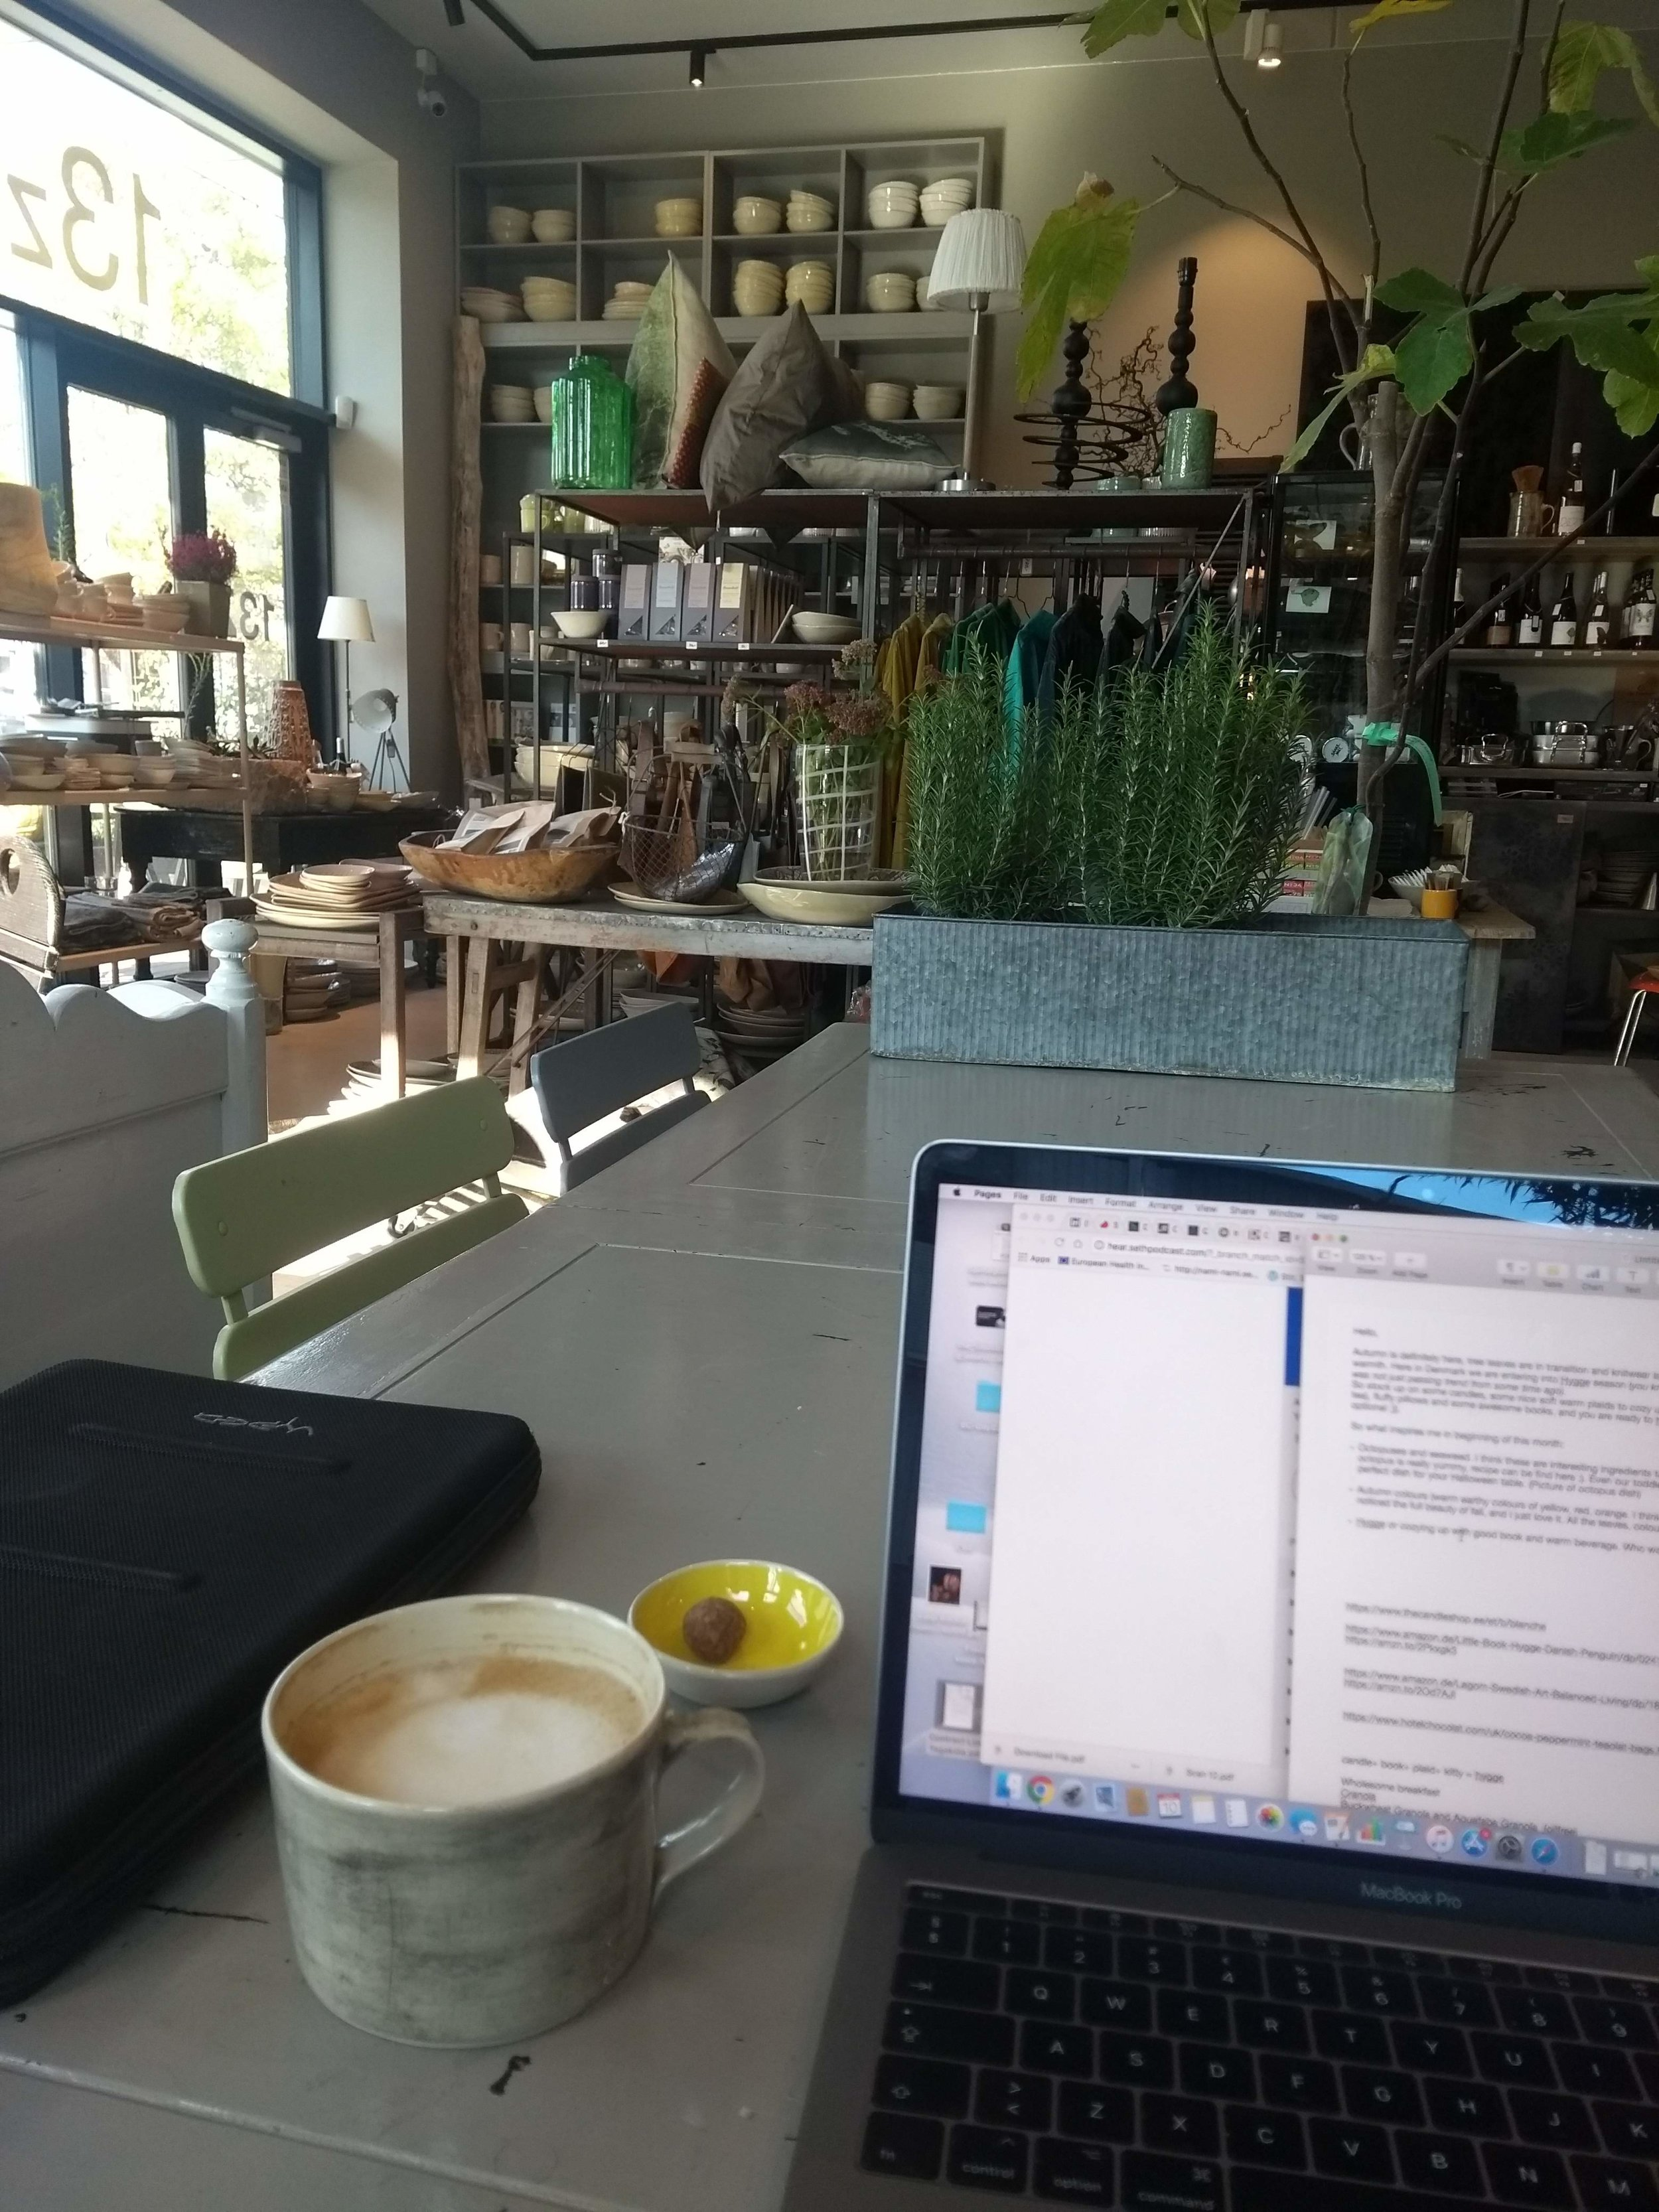 Today's cozy view of pottery, art and off course some work  :) @cafe13z